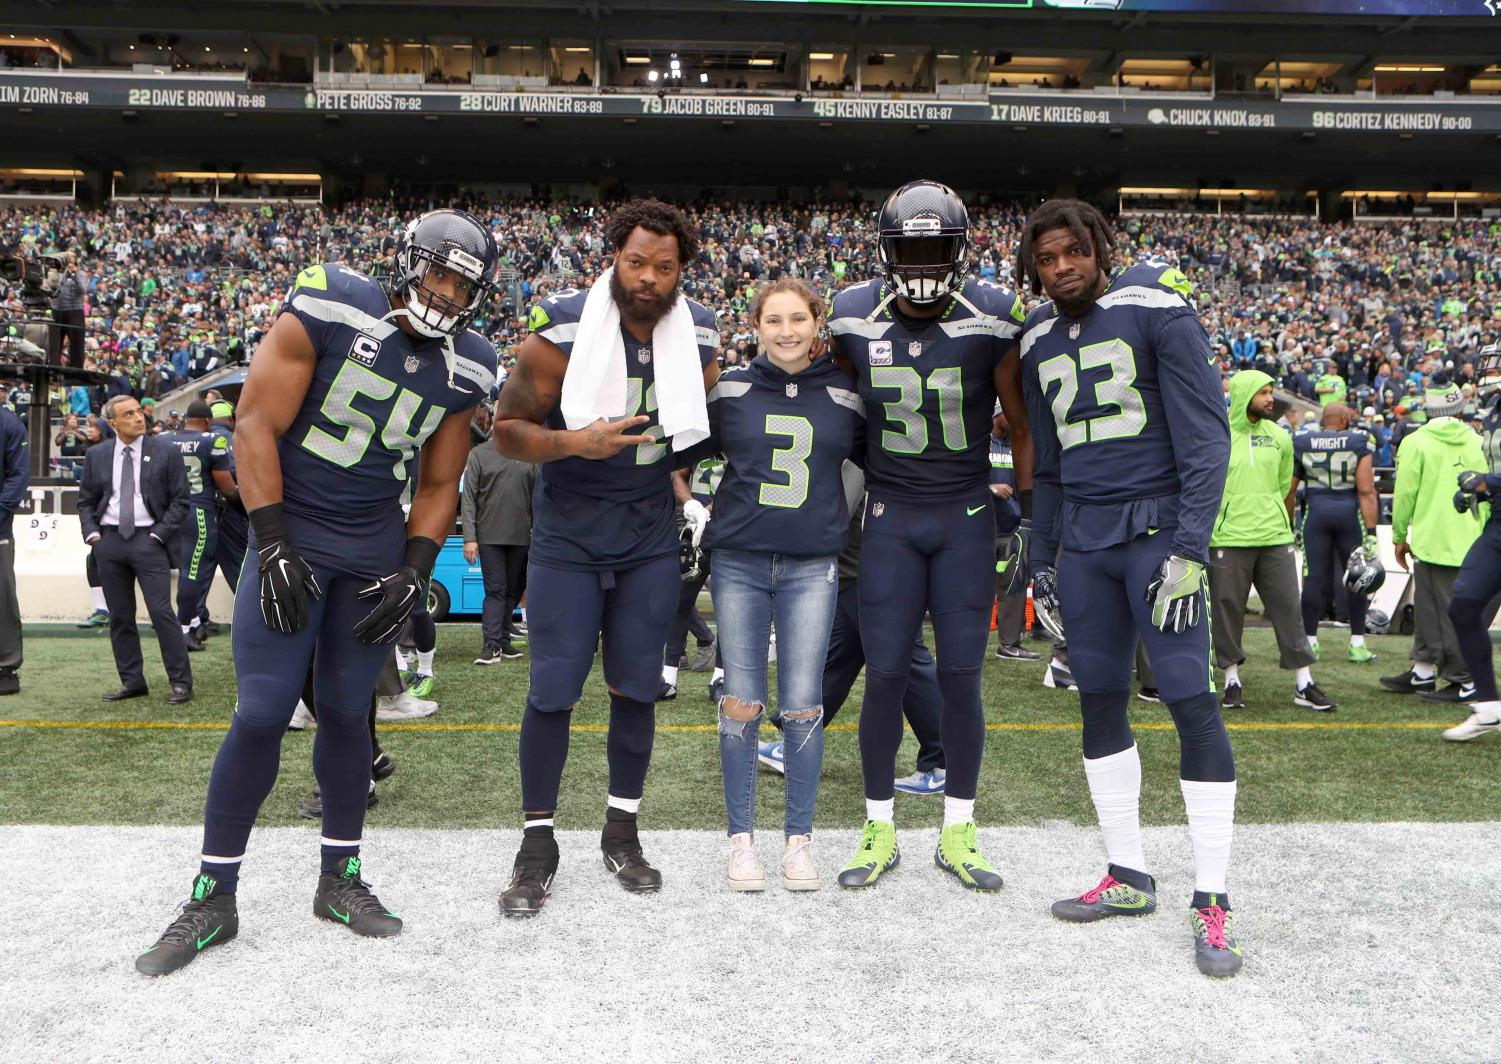 Senior Bridget Howard poses with Seahawks Players Bobby Wagner, Michael Bennett, Kam Chancellor and Neiko Thorpe. Howard was honored by the Seahawks as a part of their Crucial Catch campaign for cancer awareness.